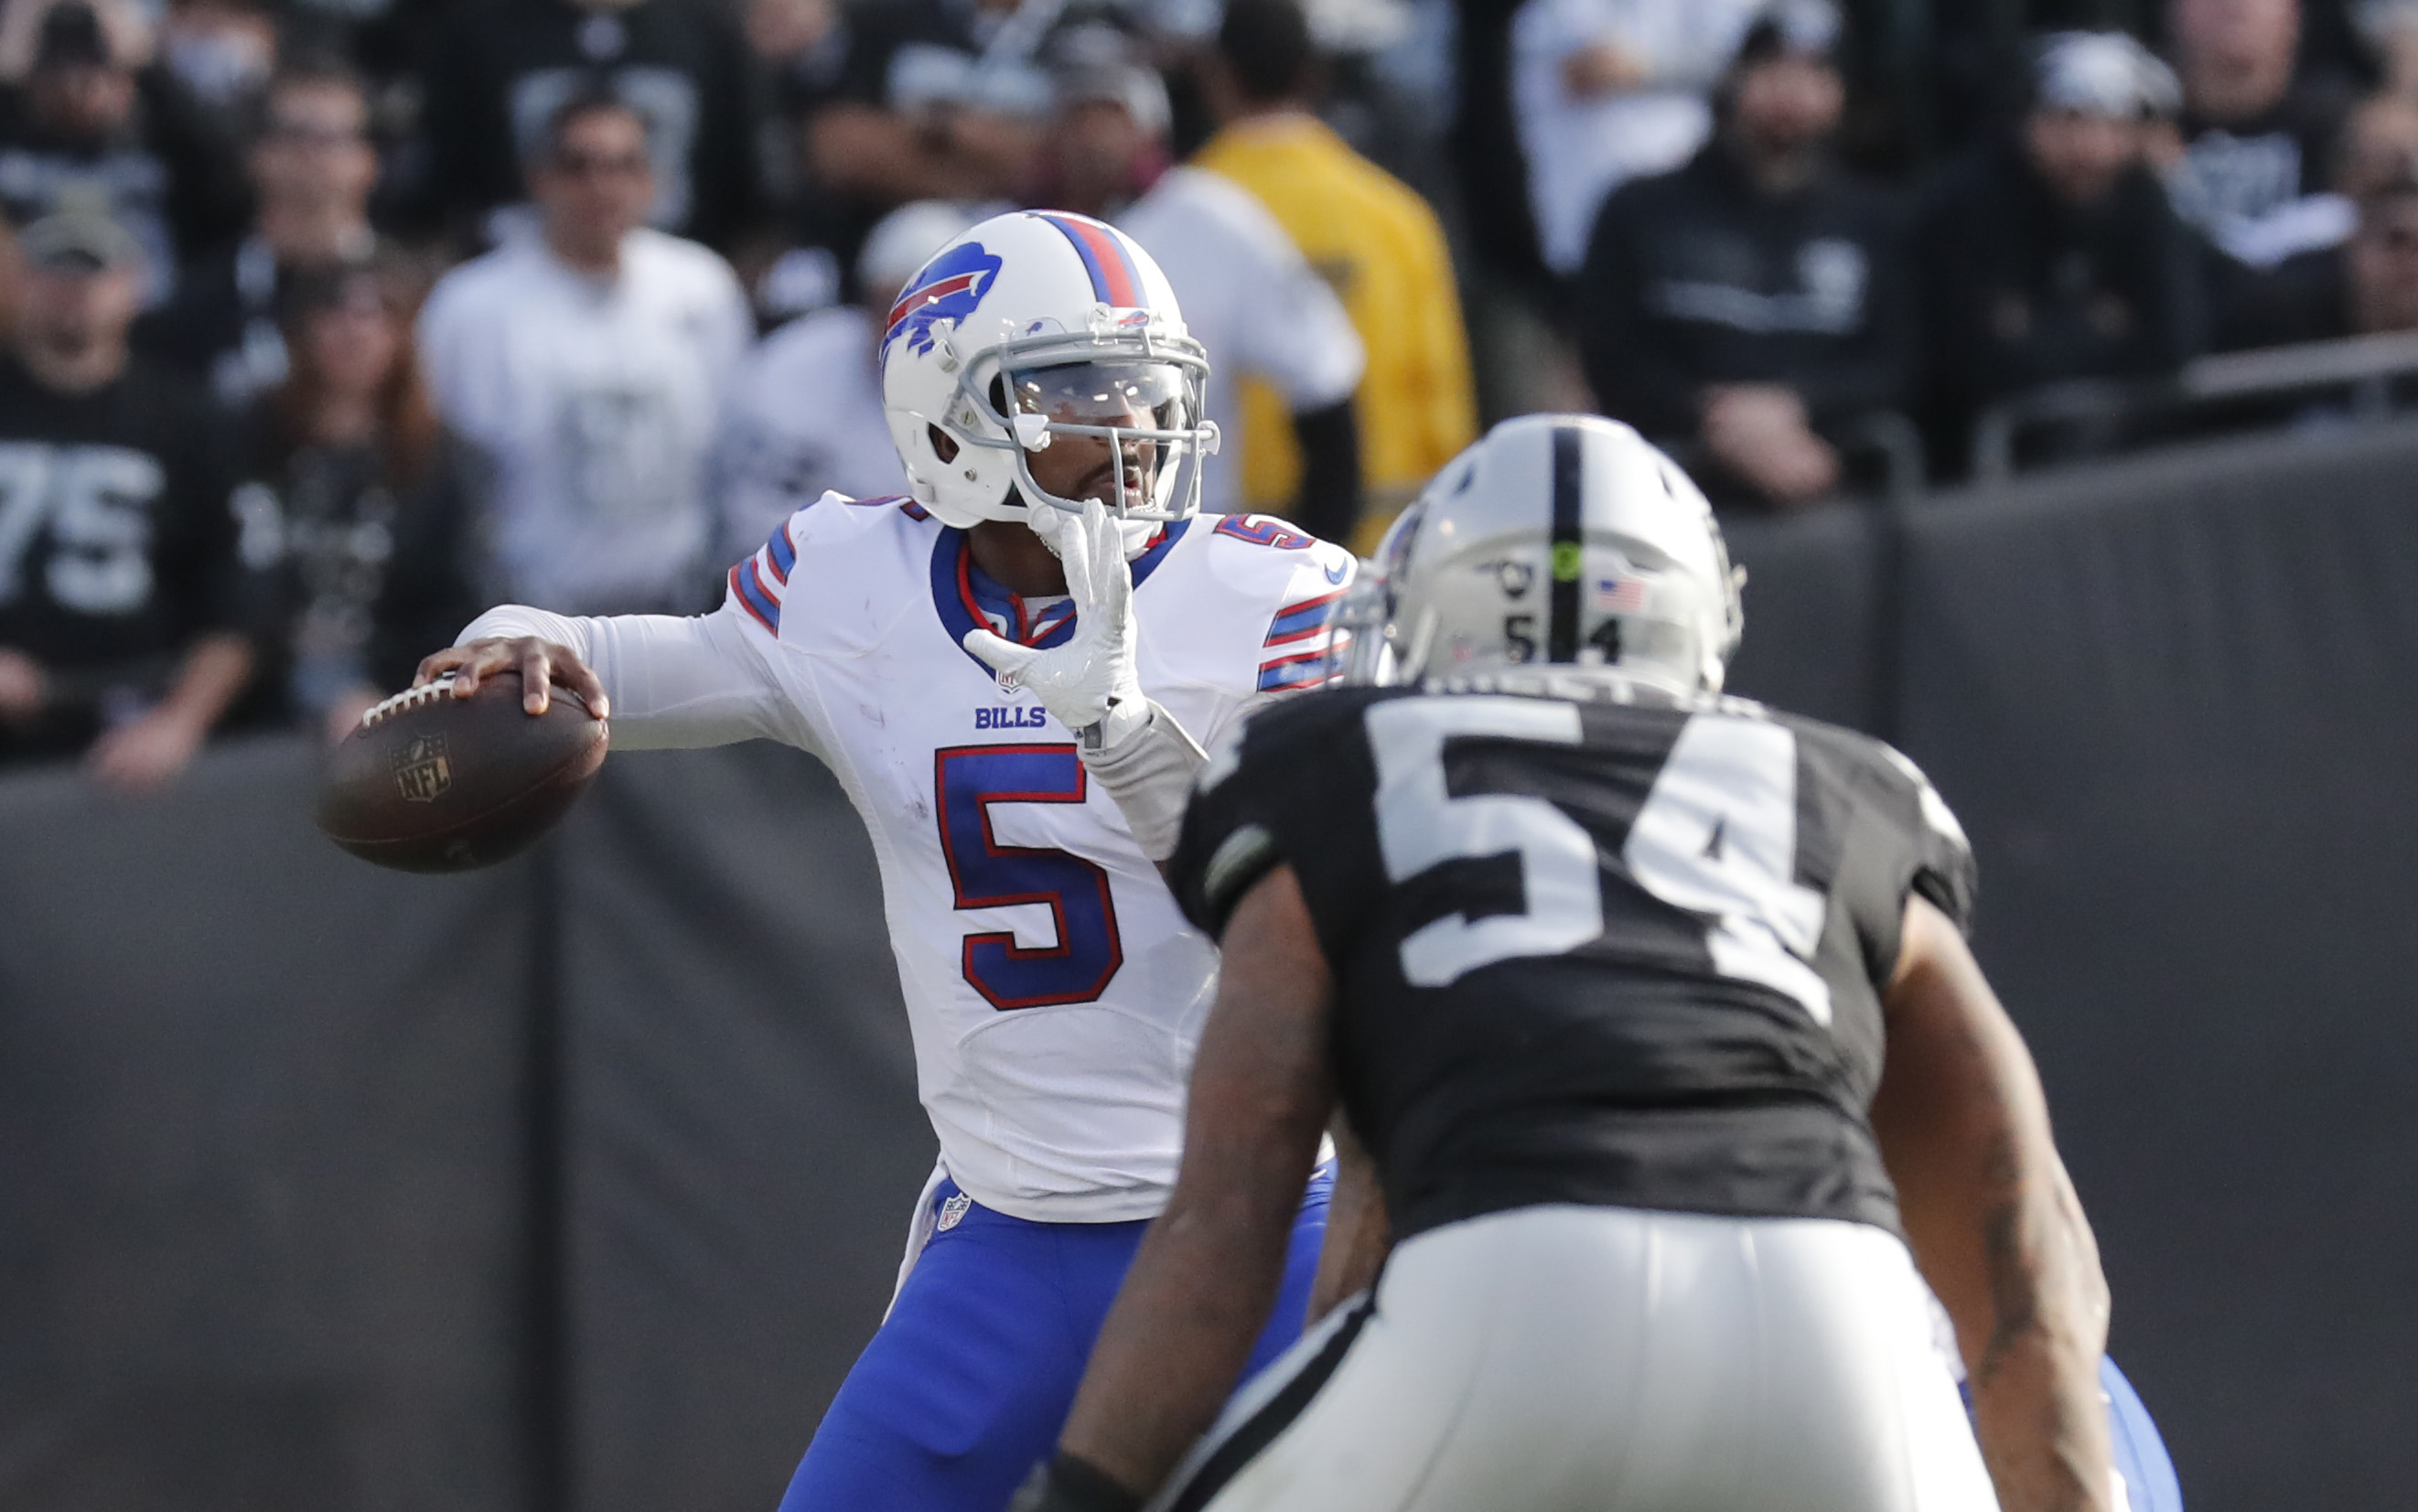 Buffalo Bills quarterback Tyrod Taylor, shown against the Oakland Raiders, is coming back. (Harry Scull Jr./Buffalo News)